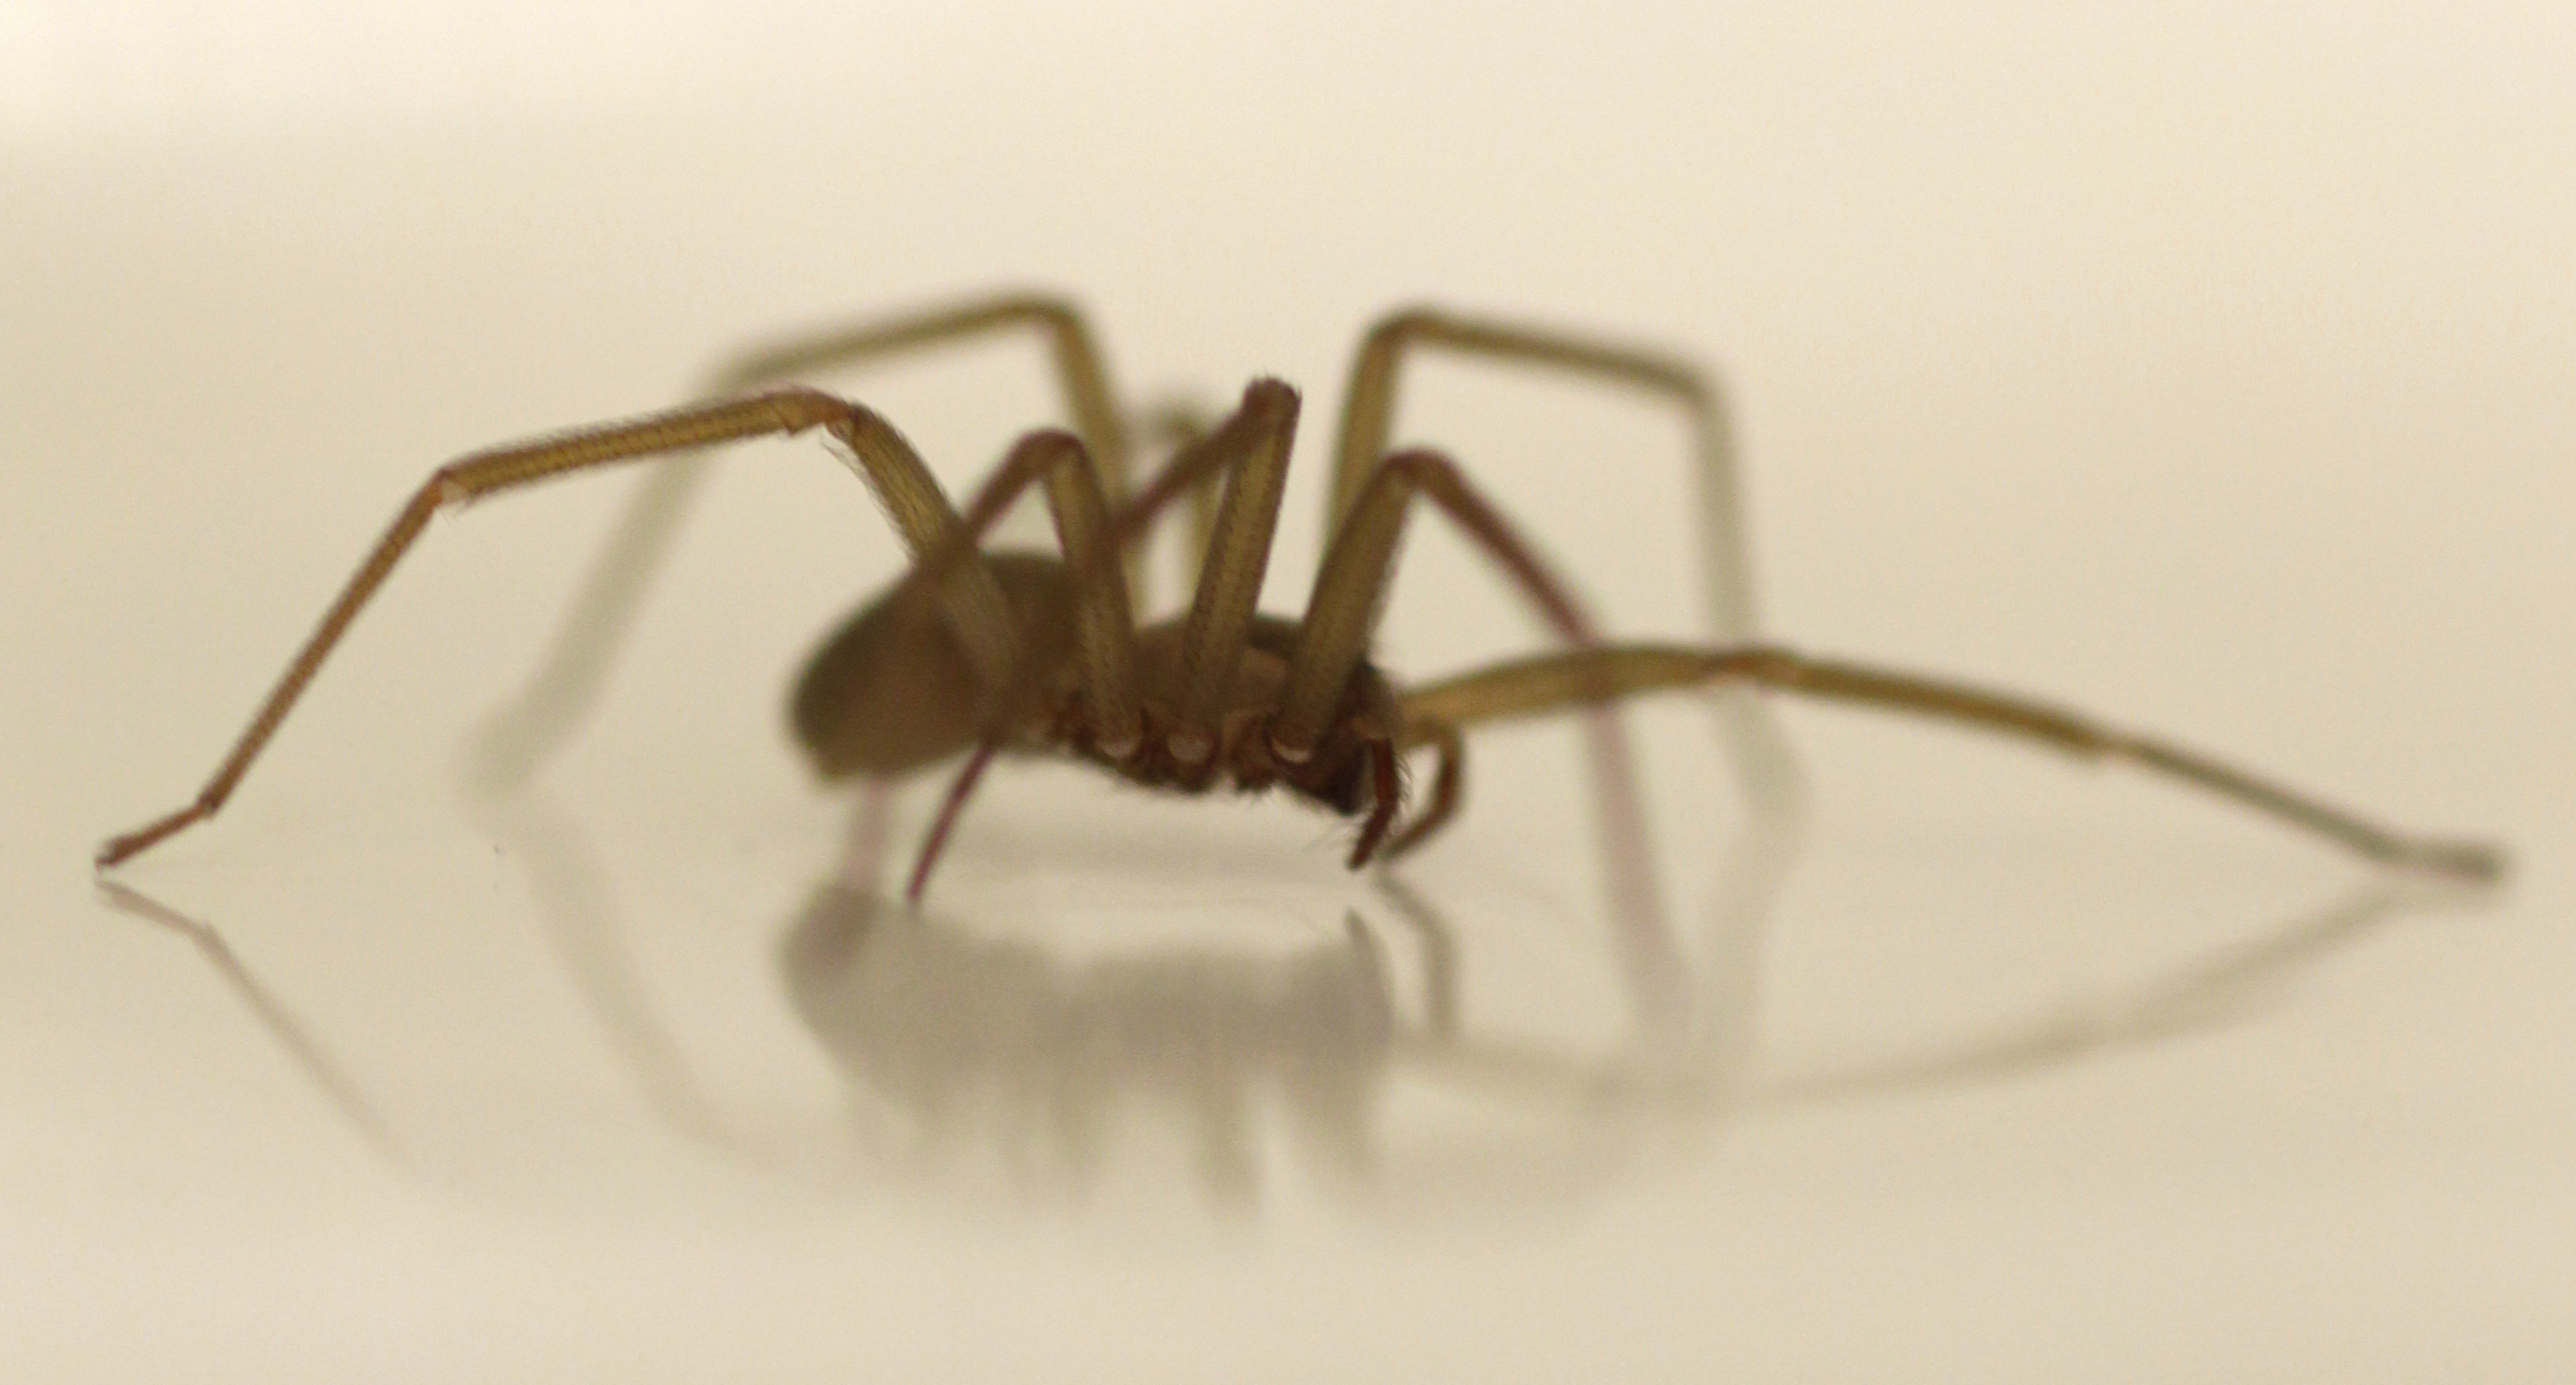 She thought she had water in her ear. It was actually a venomous brown recluse spider.